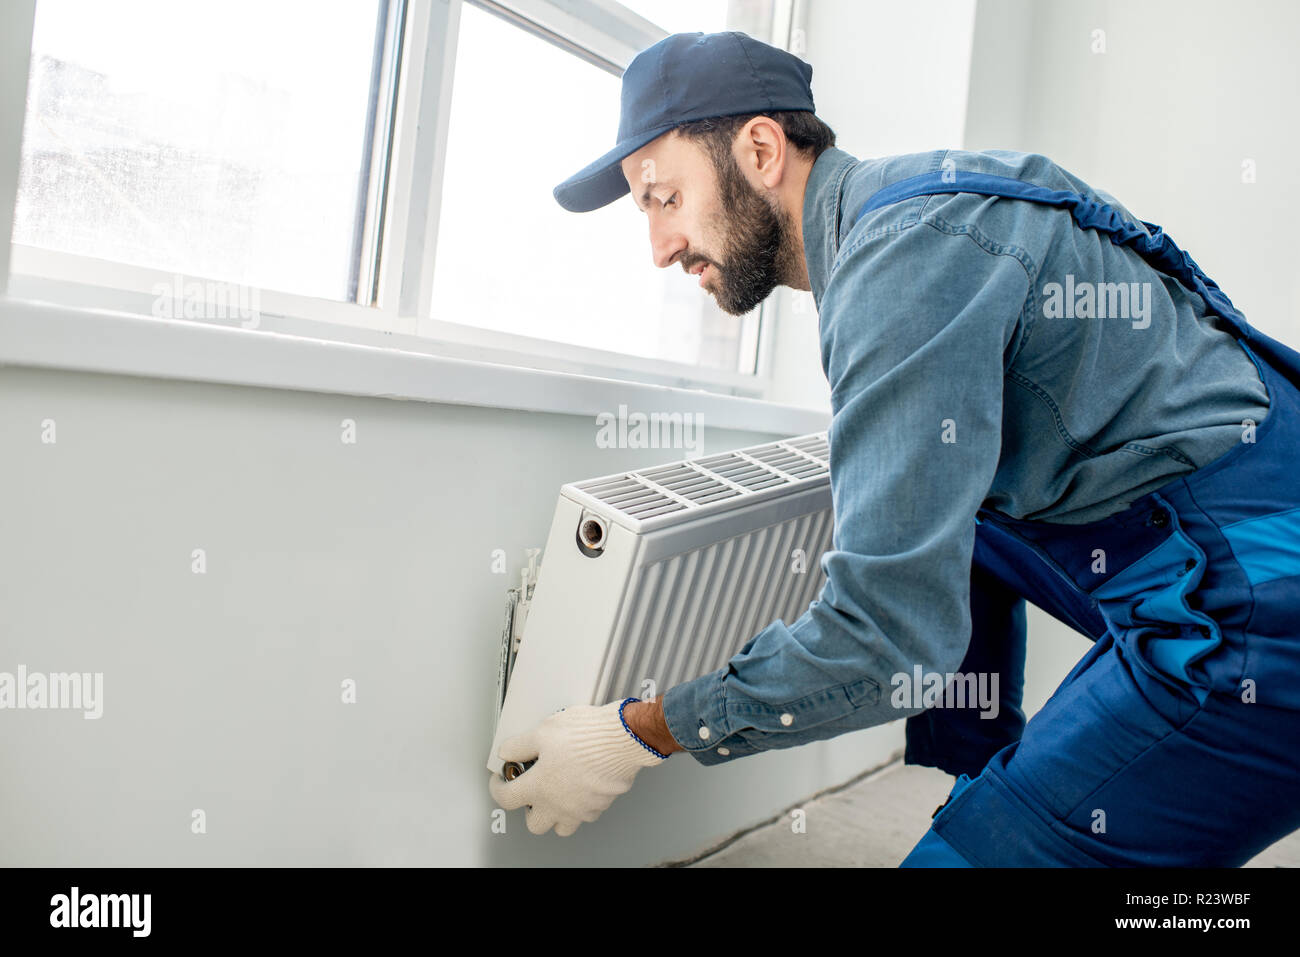 Workman mounting water heating radiator near the window in the white renovated living room - Stock Image